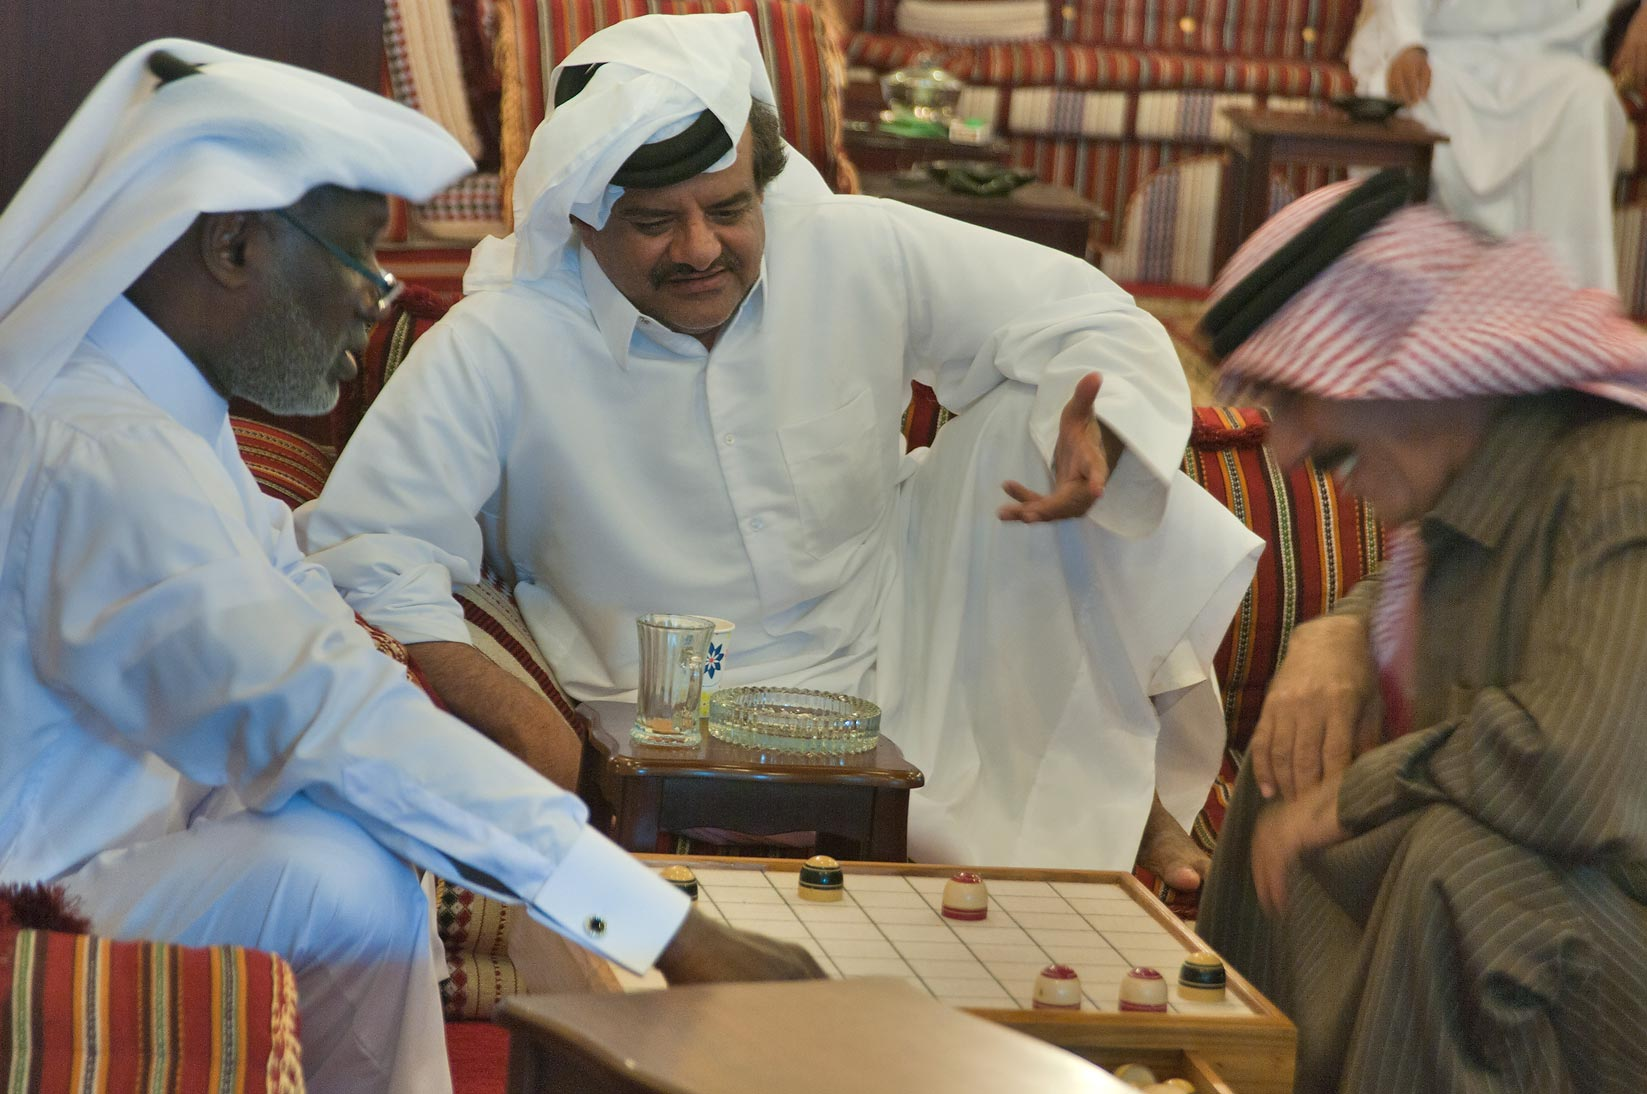 Playing a board game of Damah in Souq Waqif (Old Market). Doha, Qatar